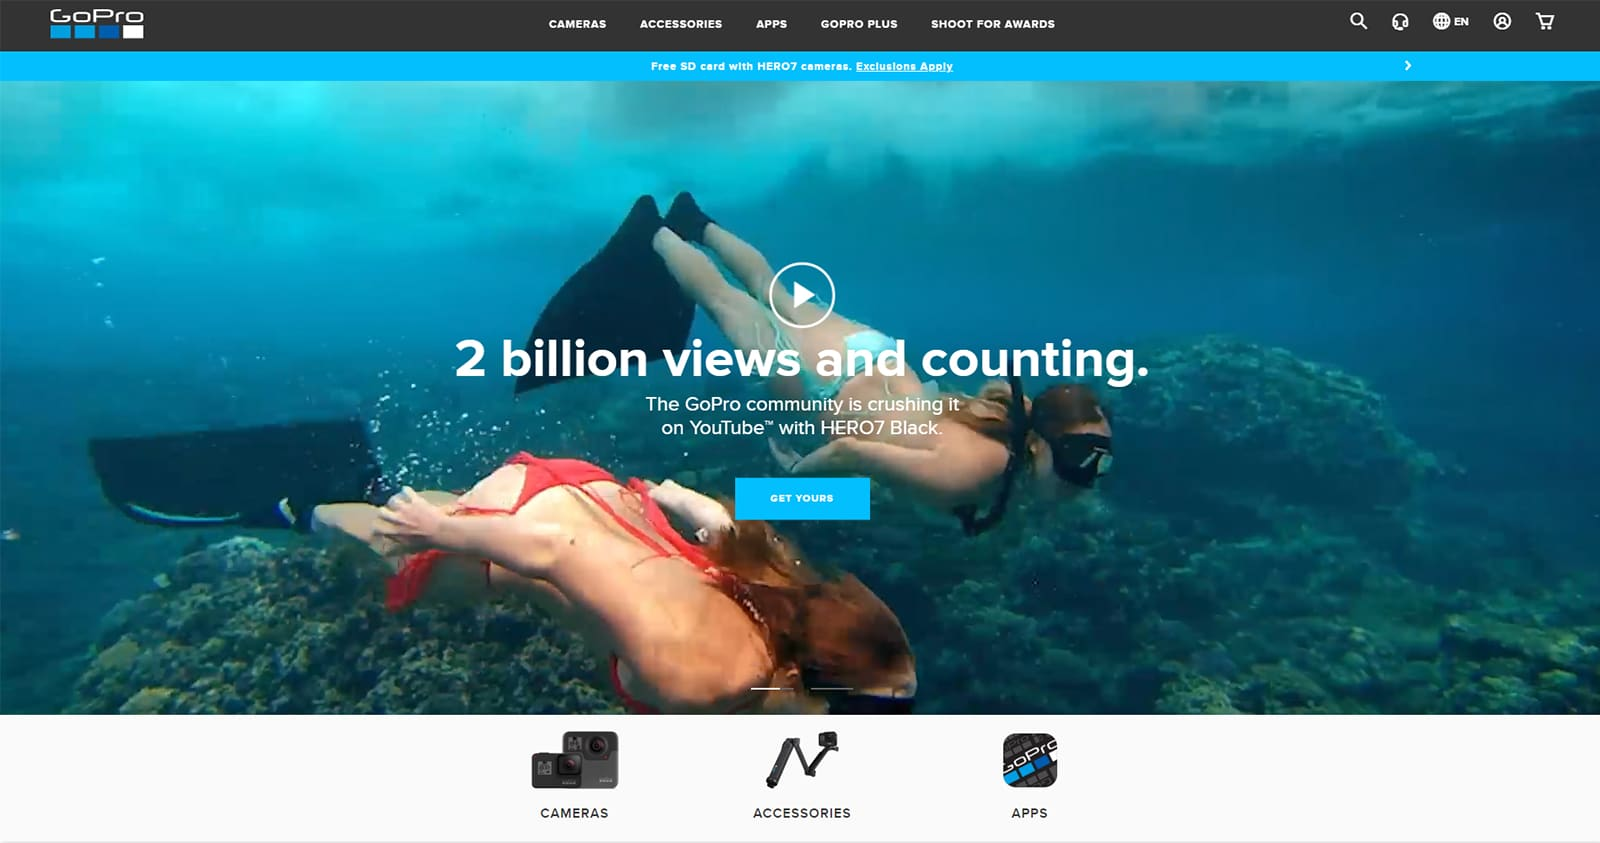 Engaging homepage video example by GoPro